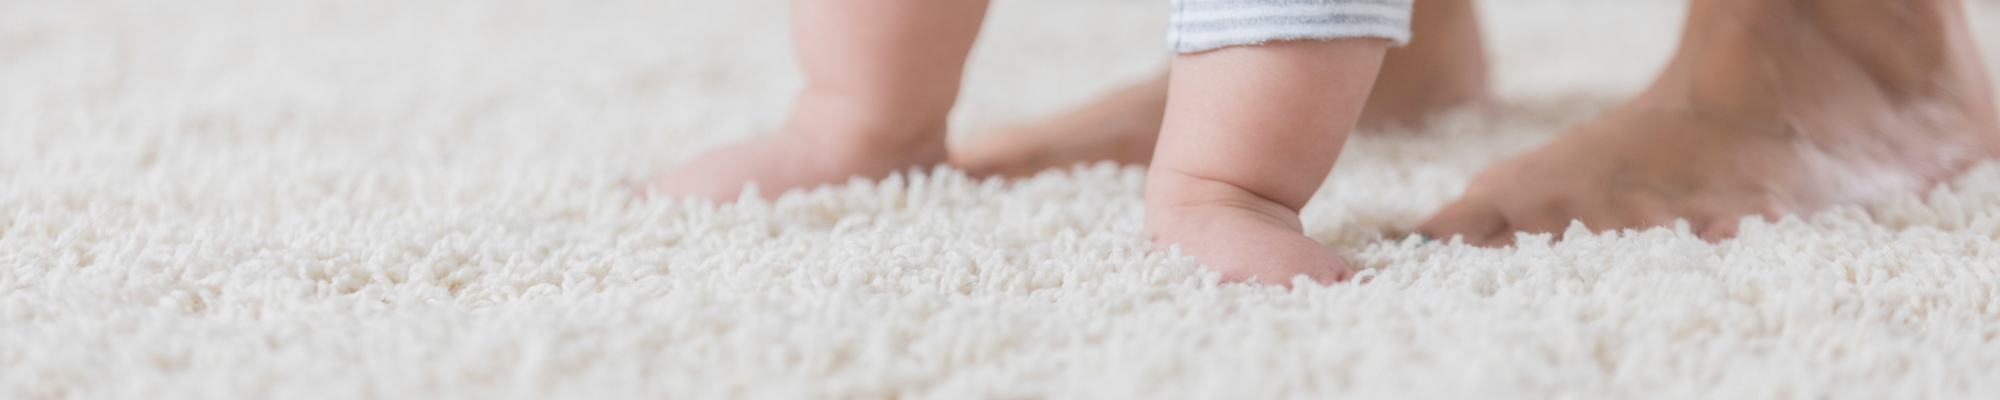 Carpet Cleaning Hereford, Upholstery Cleaning Hereford, Carpet Cleaning Herefordshire